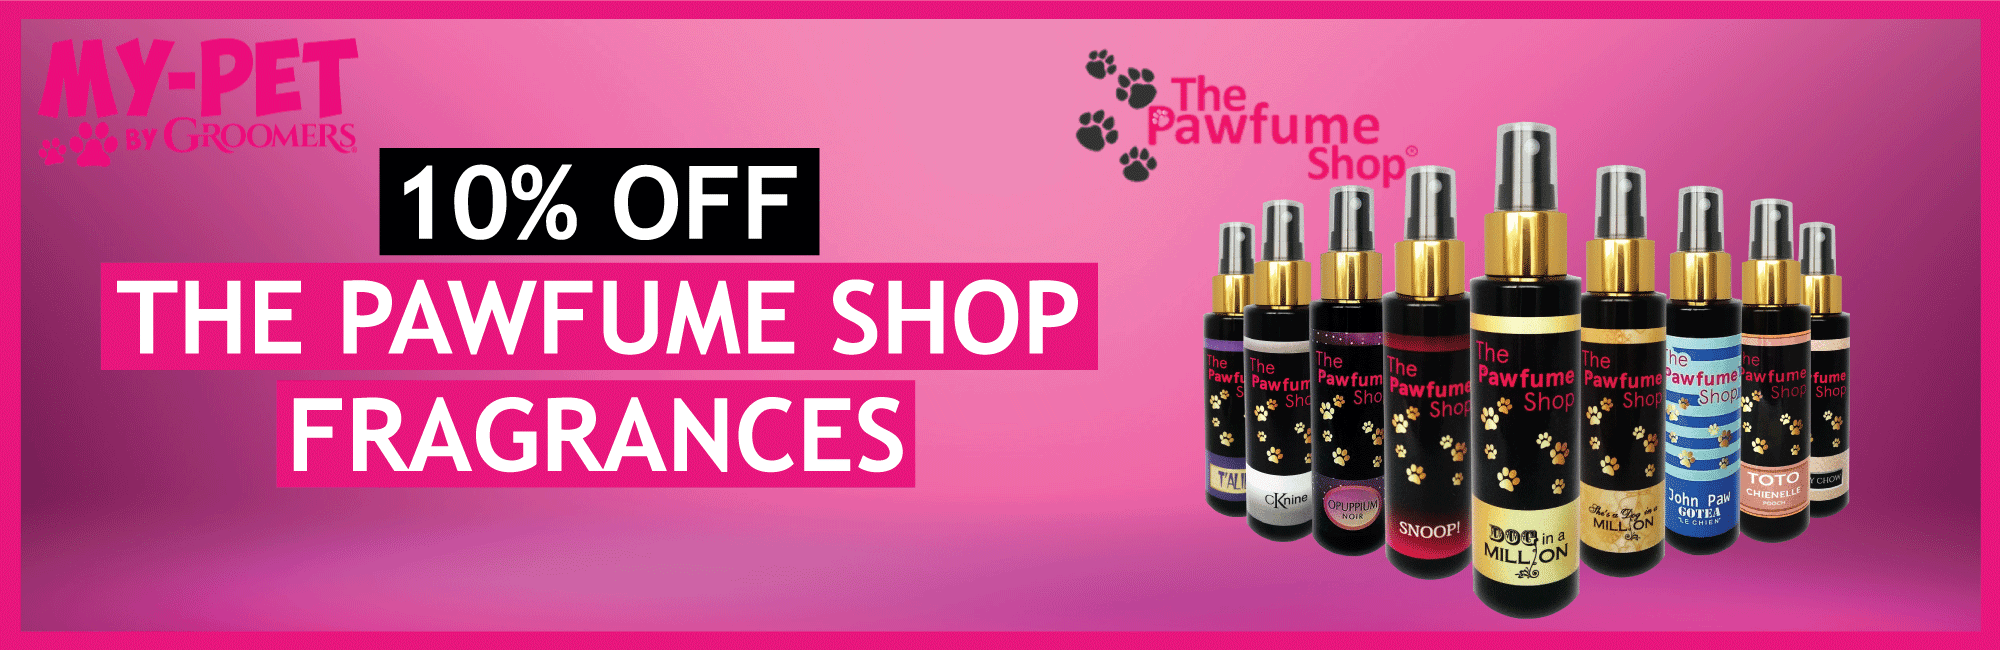 10% Off The Pawfume Shop Fragances